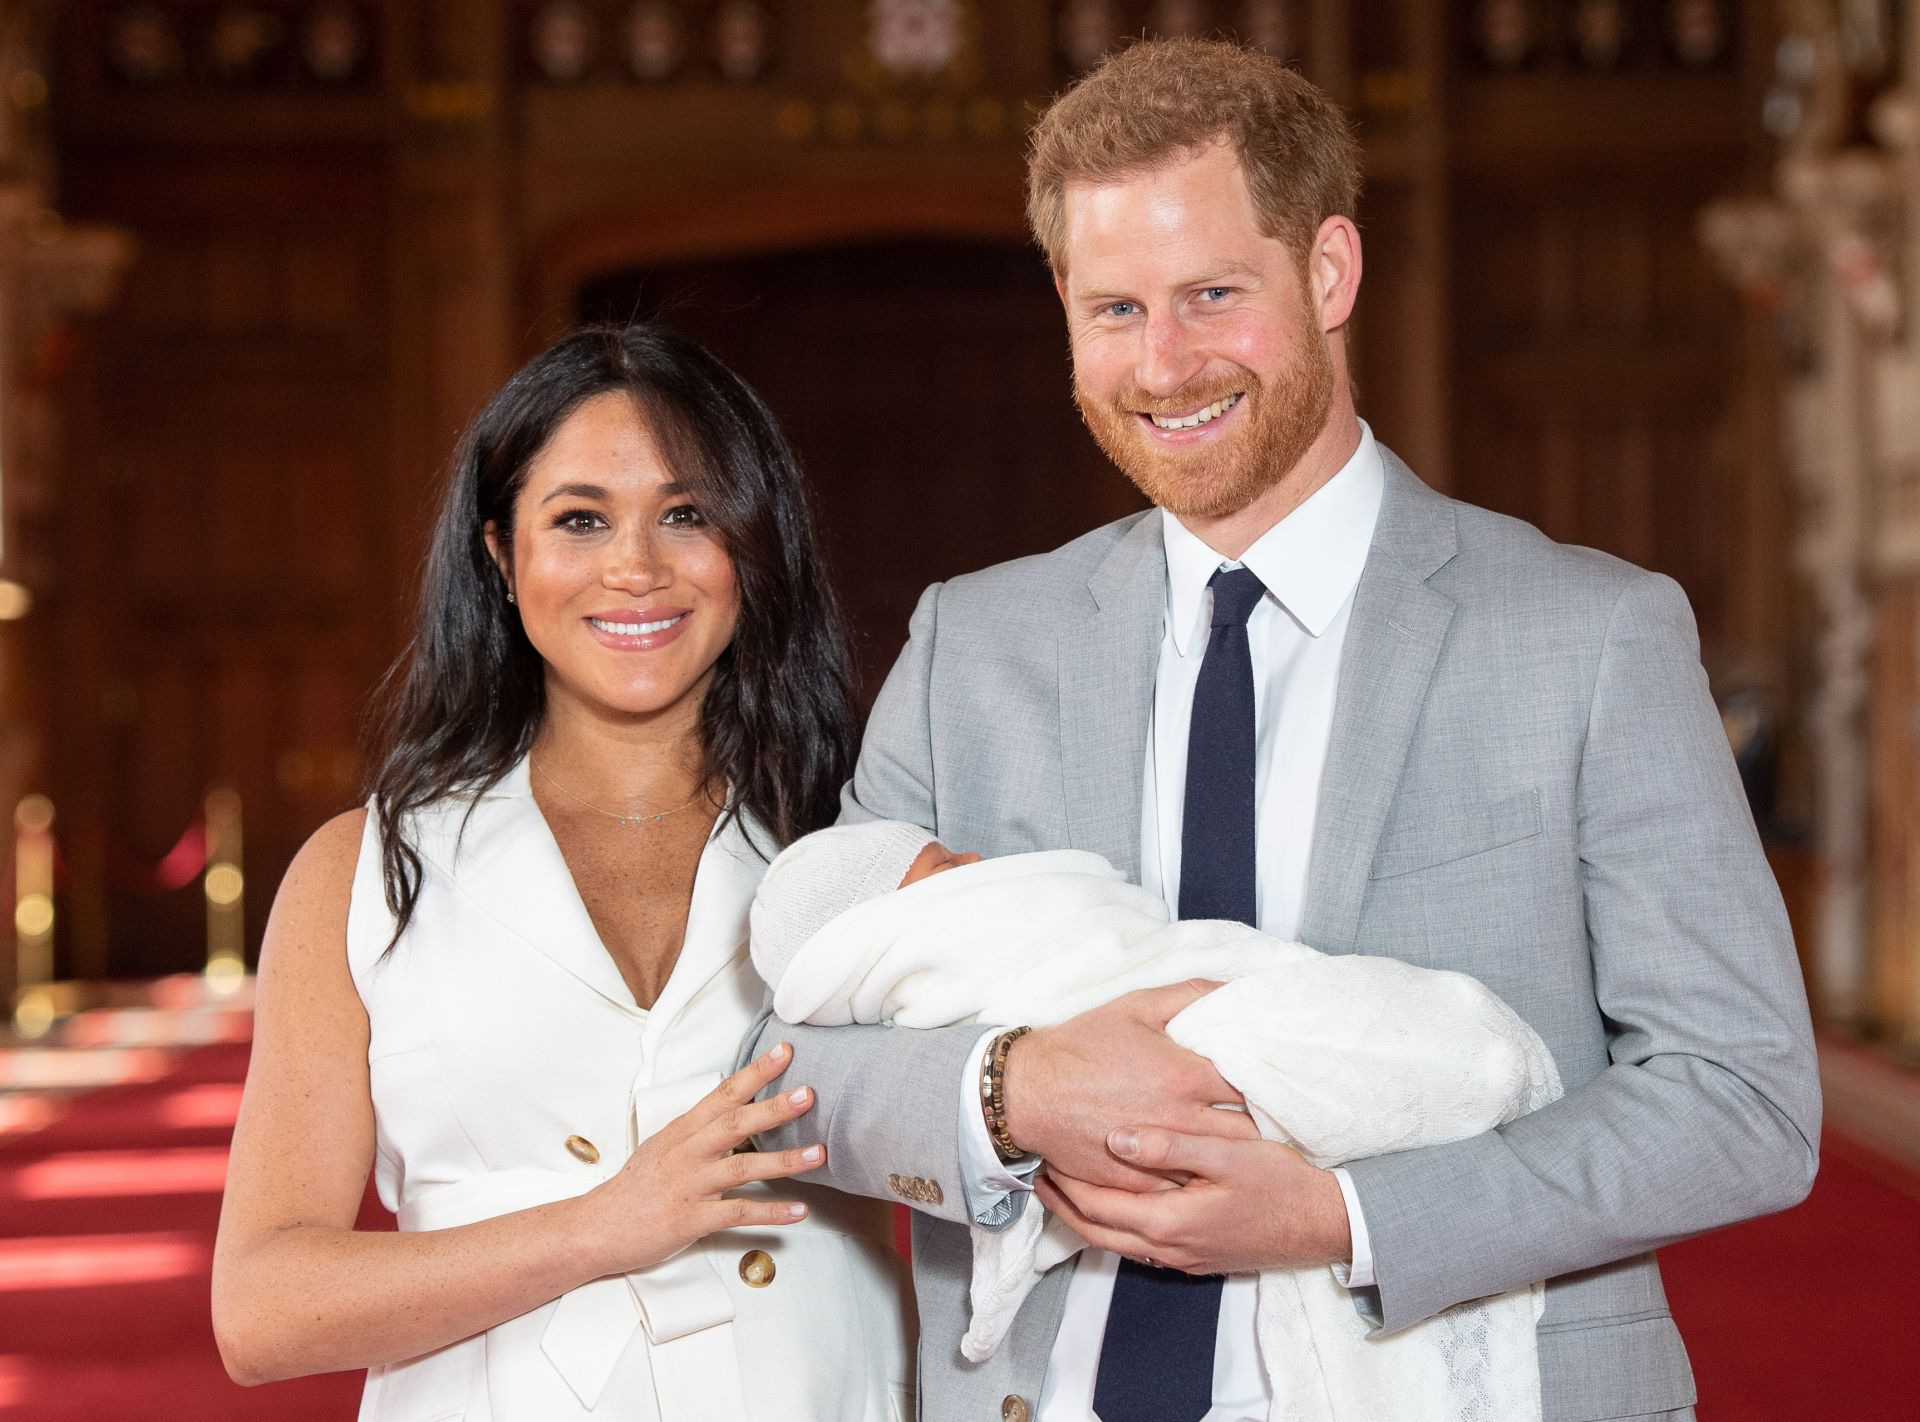 Britain's Prince Harry, Duke of Sussex (R), and his wife Meghan, Duchess of Sussex, pose for a photo with their newborn baby son in St George's Hall at Windsor Castle in Windsor, west of London on May 8, 2019. (Photo by Dominic Lipinski / POOL / AFP)